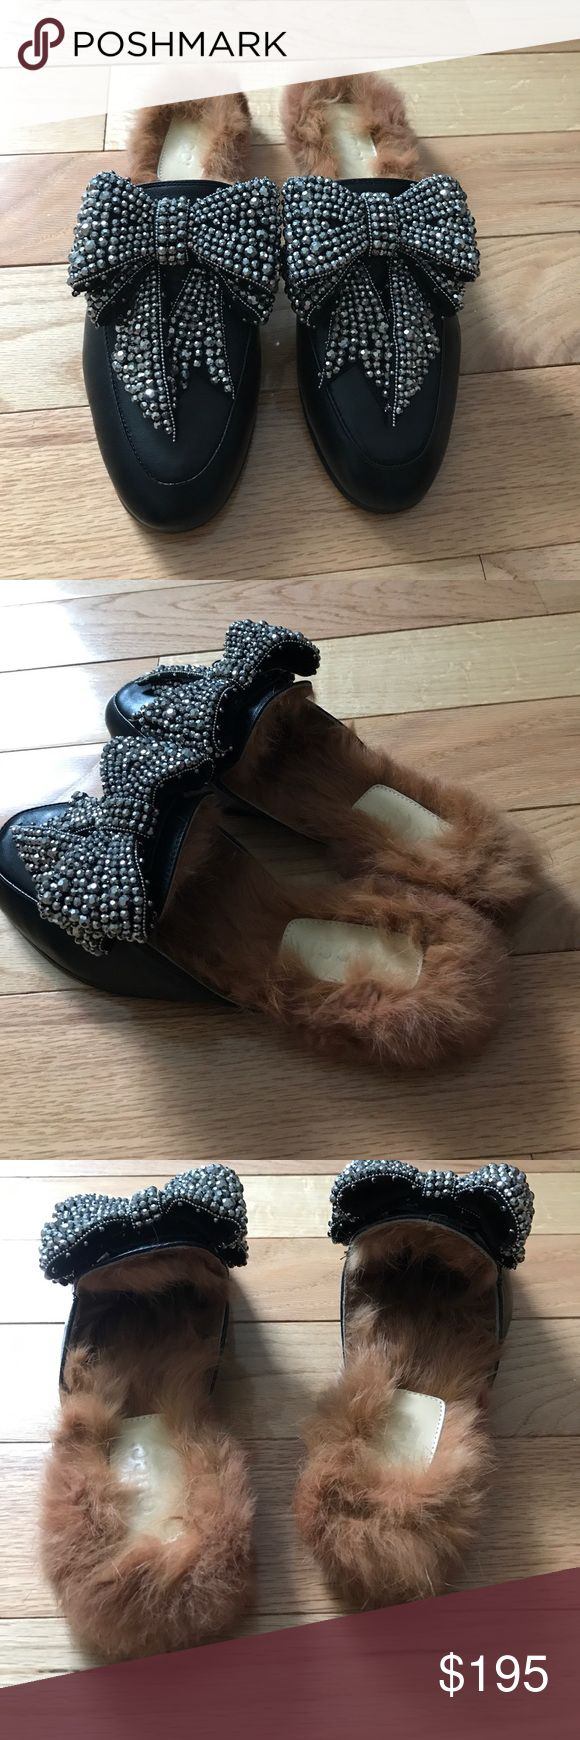 Gucci bow princetown fur loafer slippers 40 Brand new princetown fur slippers with crystal bow and fur lining. Sz 40 Gucci Shoes Flats & Loafers